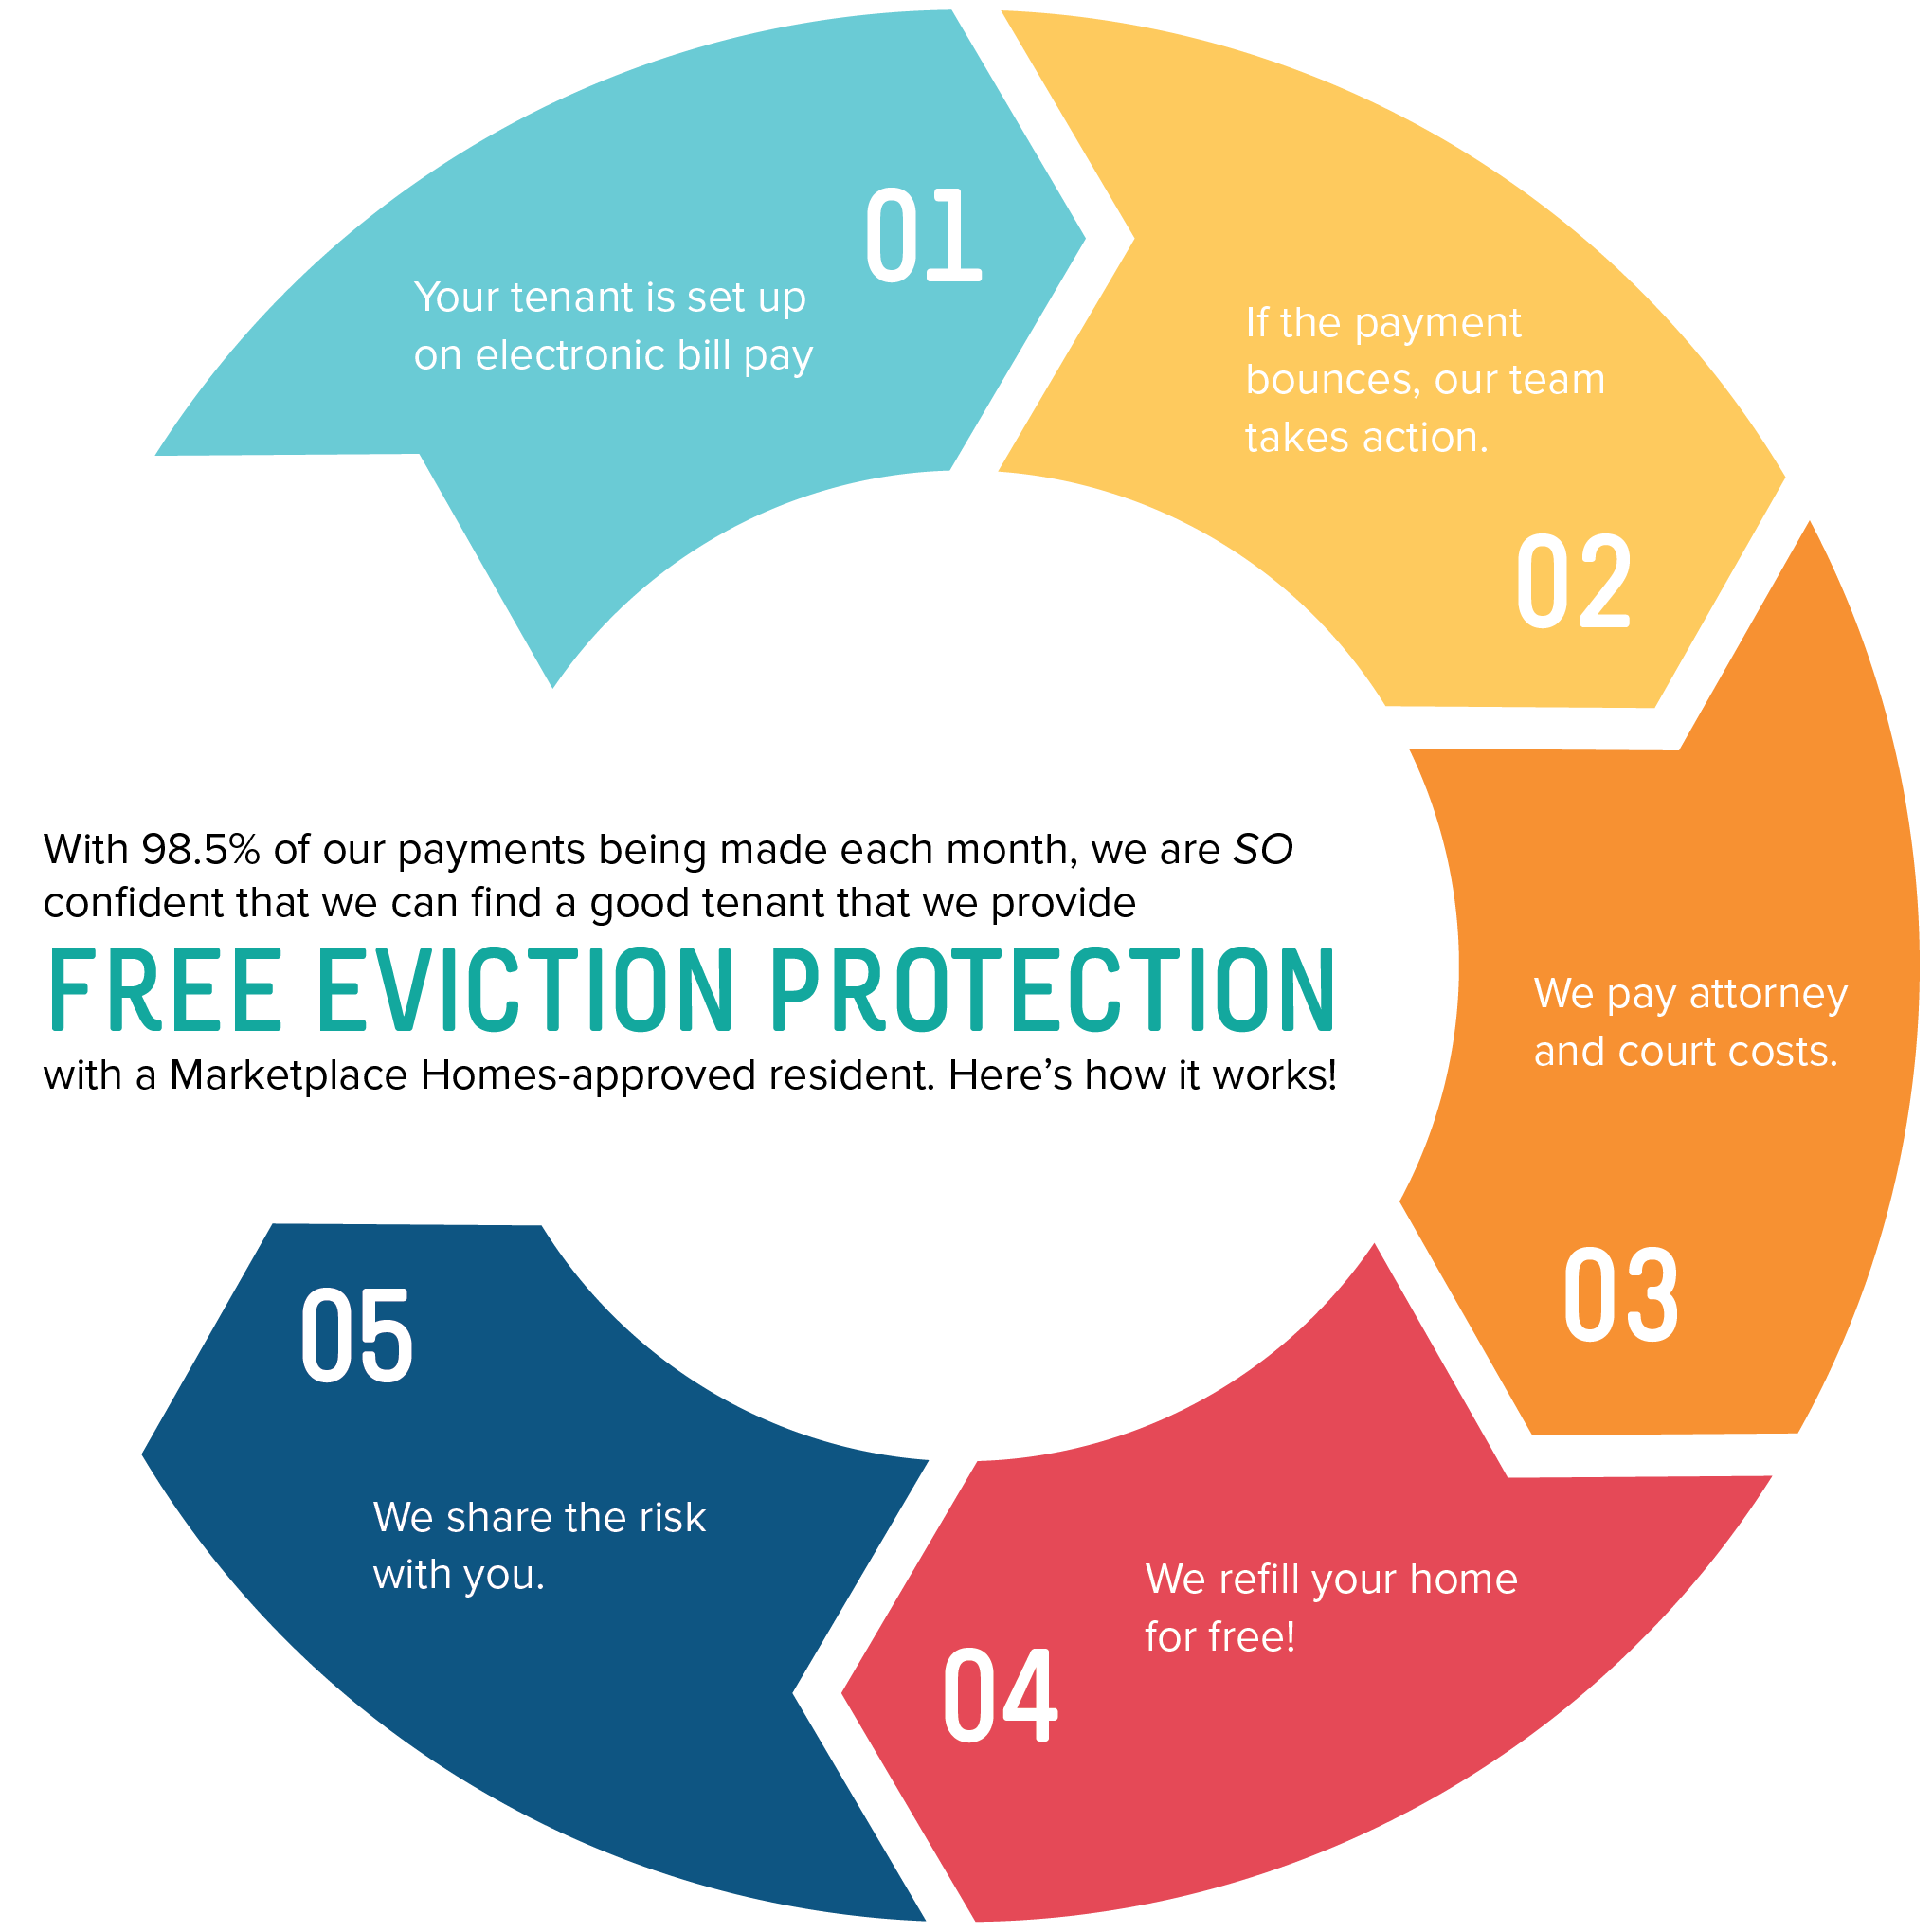 Free Eviction Protection2-01